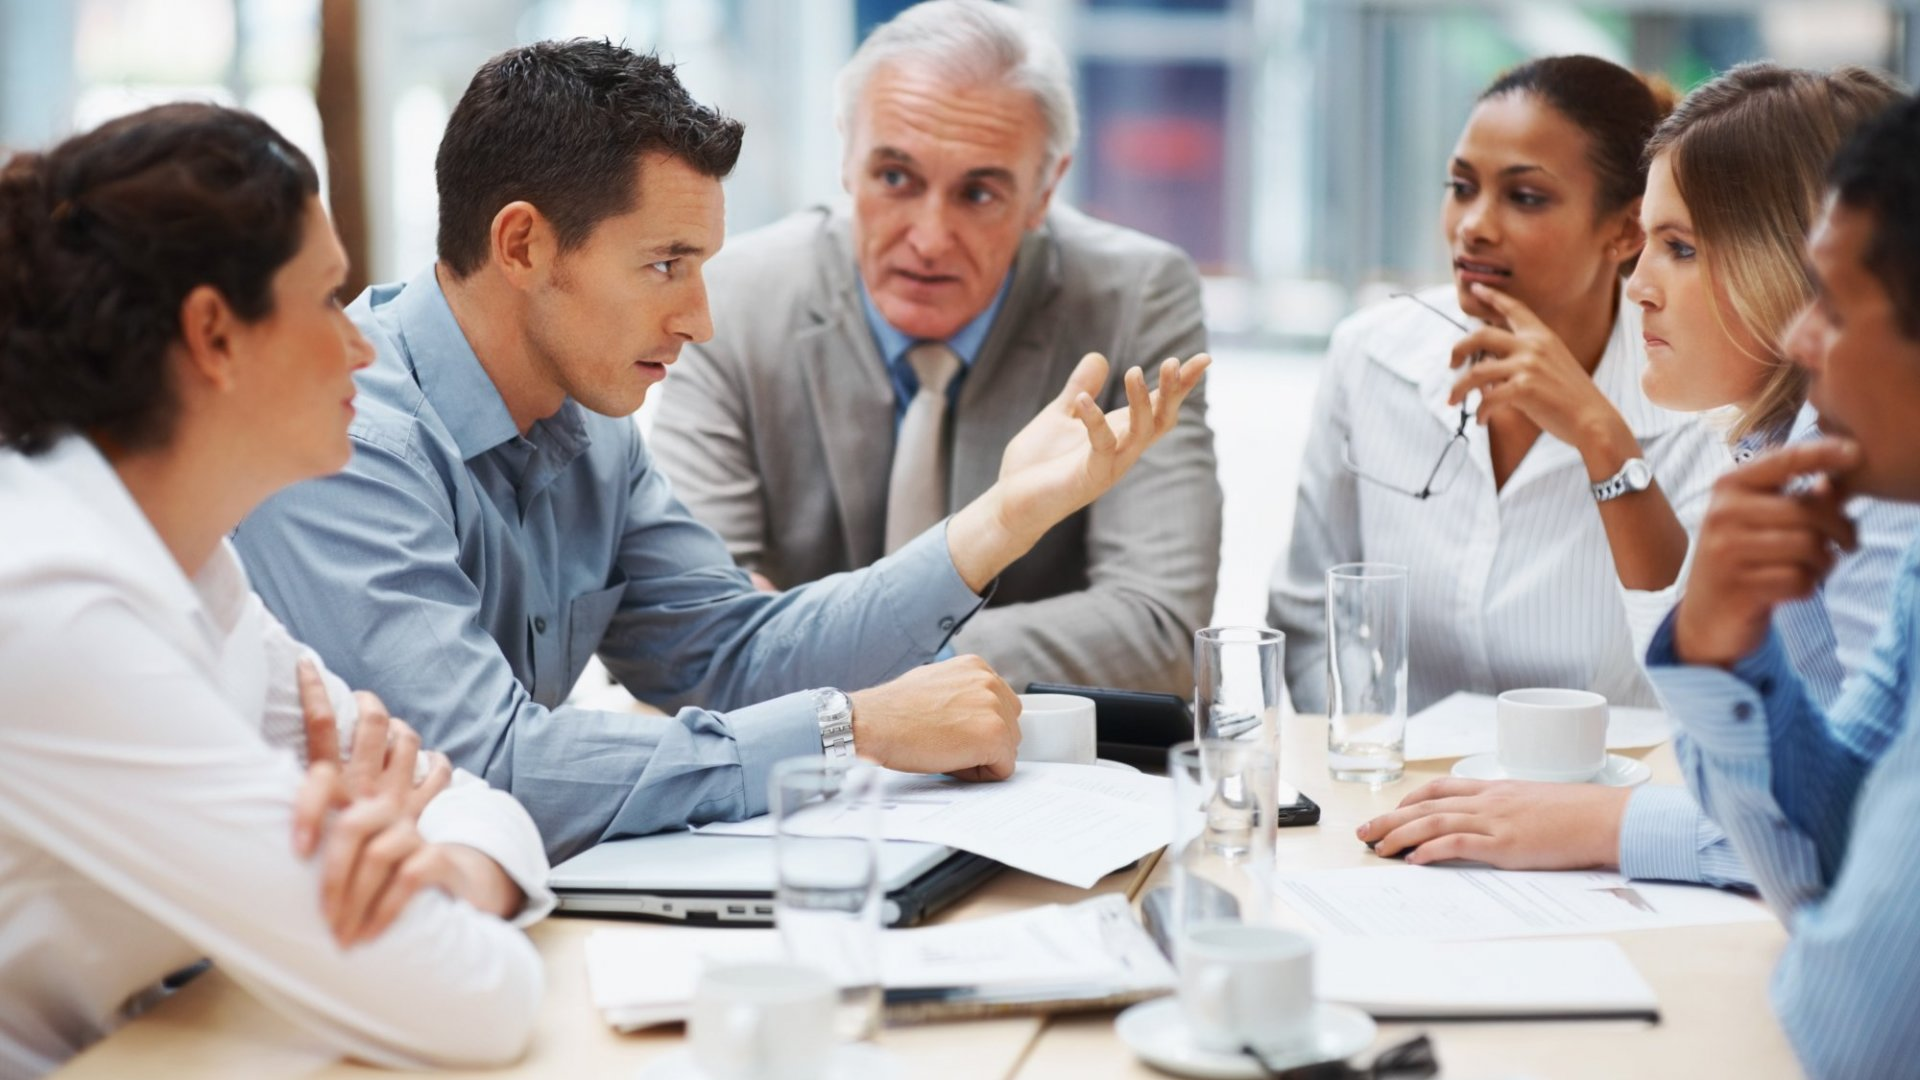 Here's the One Thing That Could Improve Your Team's Dynamics